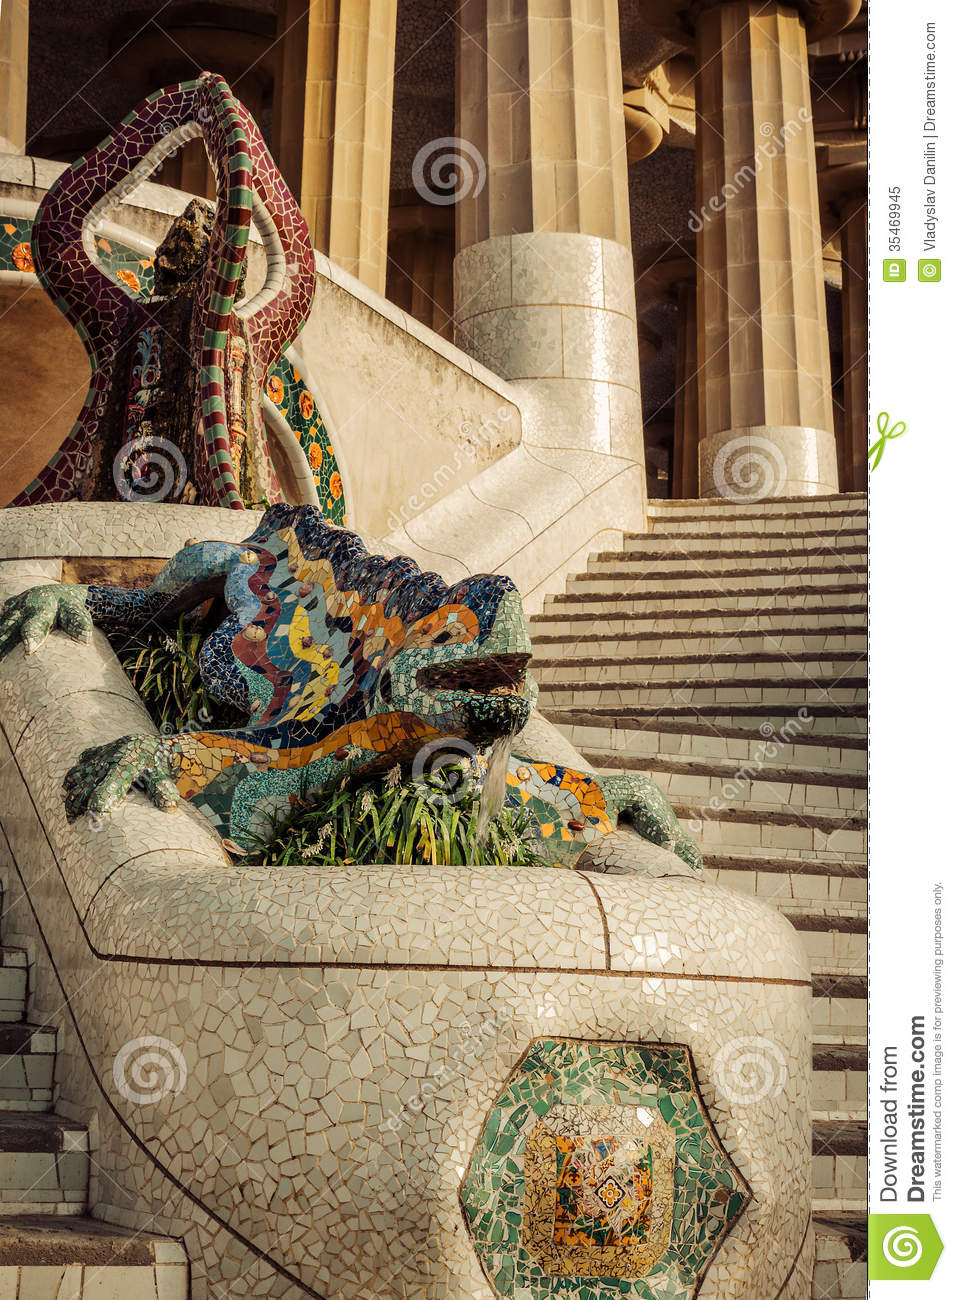 Lizard in park guell in barcelona spain royalty free stock photo image 35469945 - Mobles vintage barcelona ...